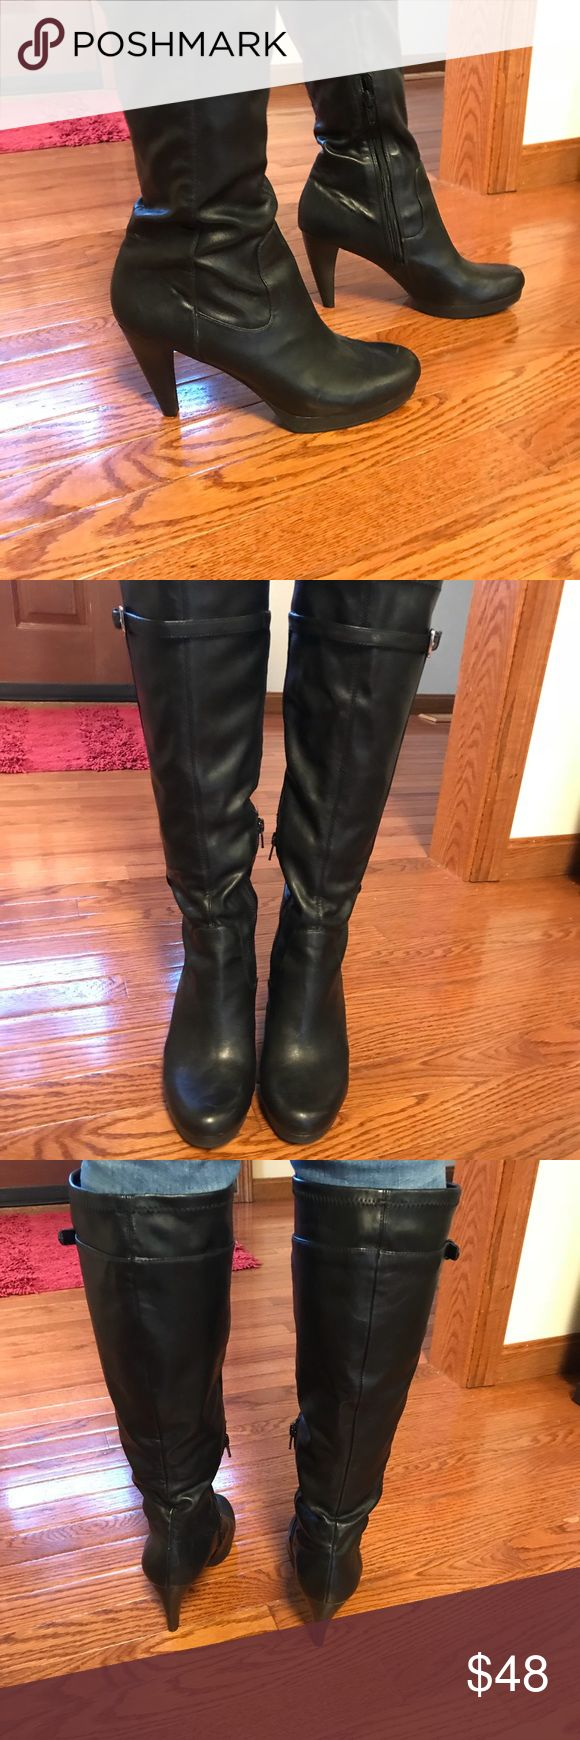 Nine West Tall Boots - 3.5 inch heel! Nine West Tall Boots - leather. 3.5 inch heels. Fun and cute! Size 7.5. Great with skirts and jeans! 👠🖤 Only worn once or twice. In excellent condition. Nine West Shoes Heeled Boots